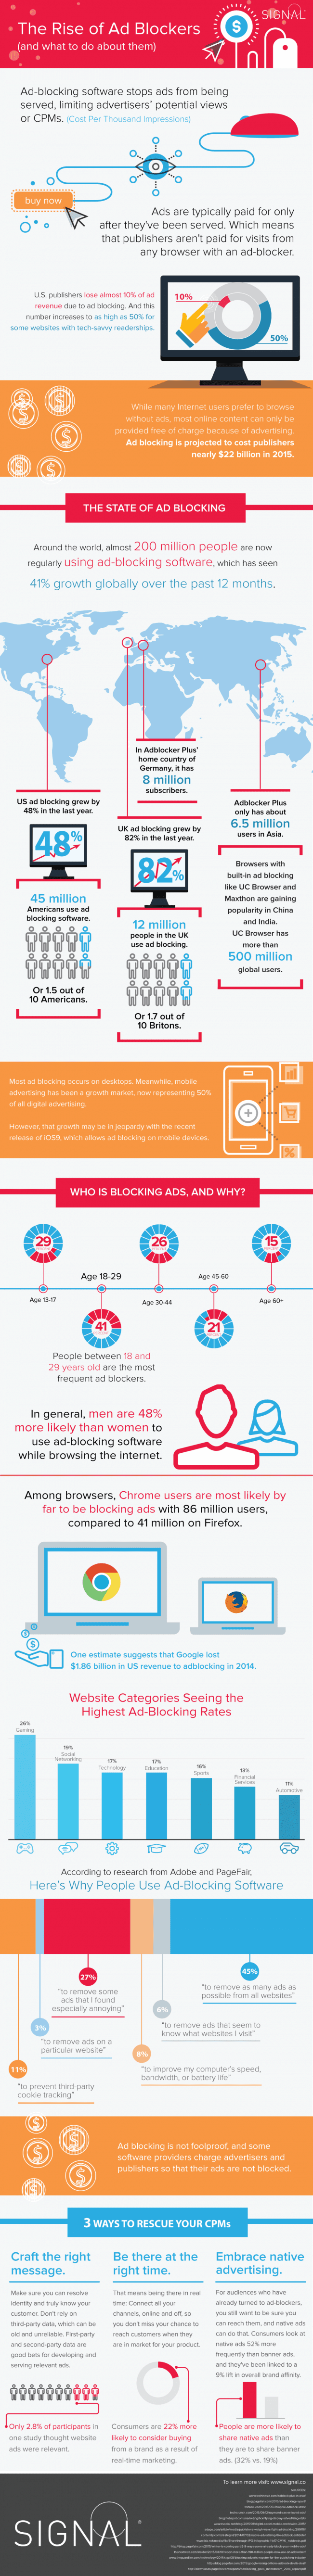 Ad Blocking and It's Effects on Advertisers and Publishers